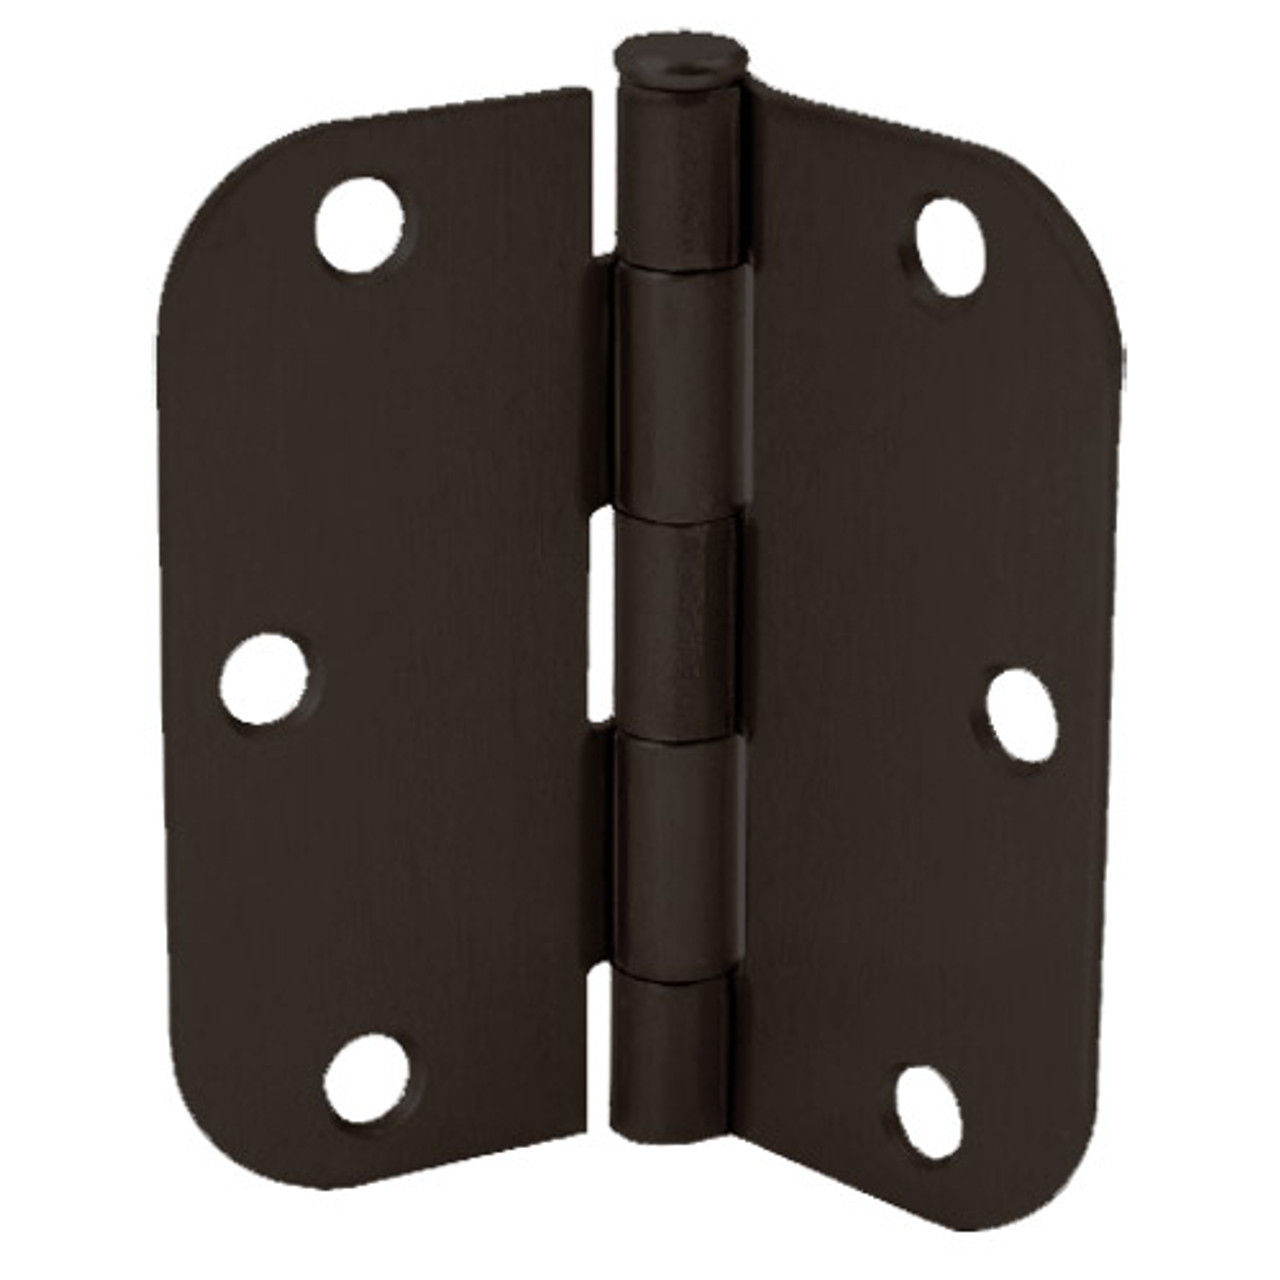 RPB73535-58-640 Don Jo Residential Hinges in Oil Rubbed Bronze Finish